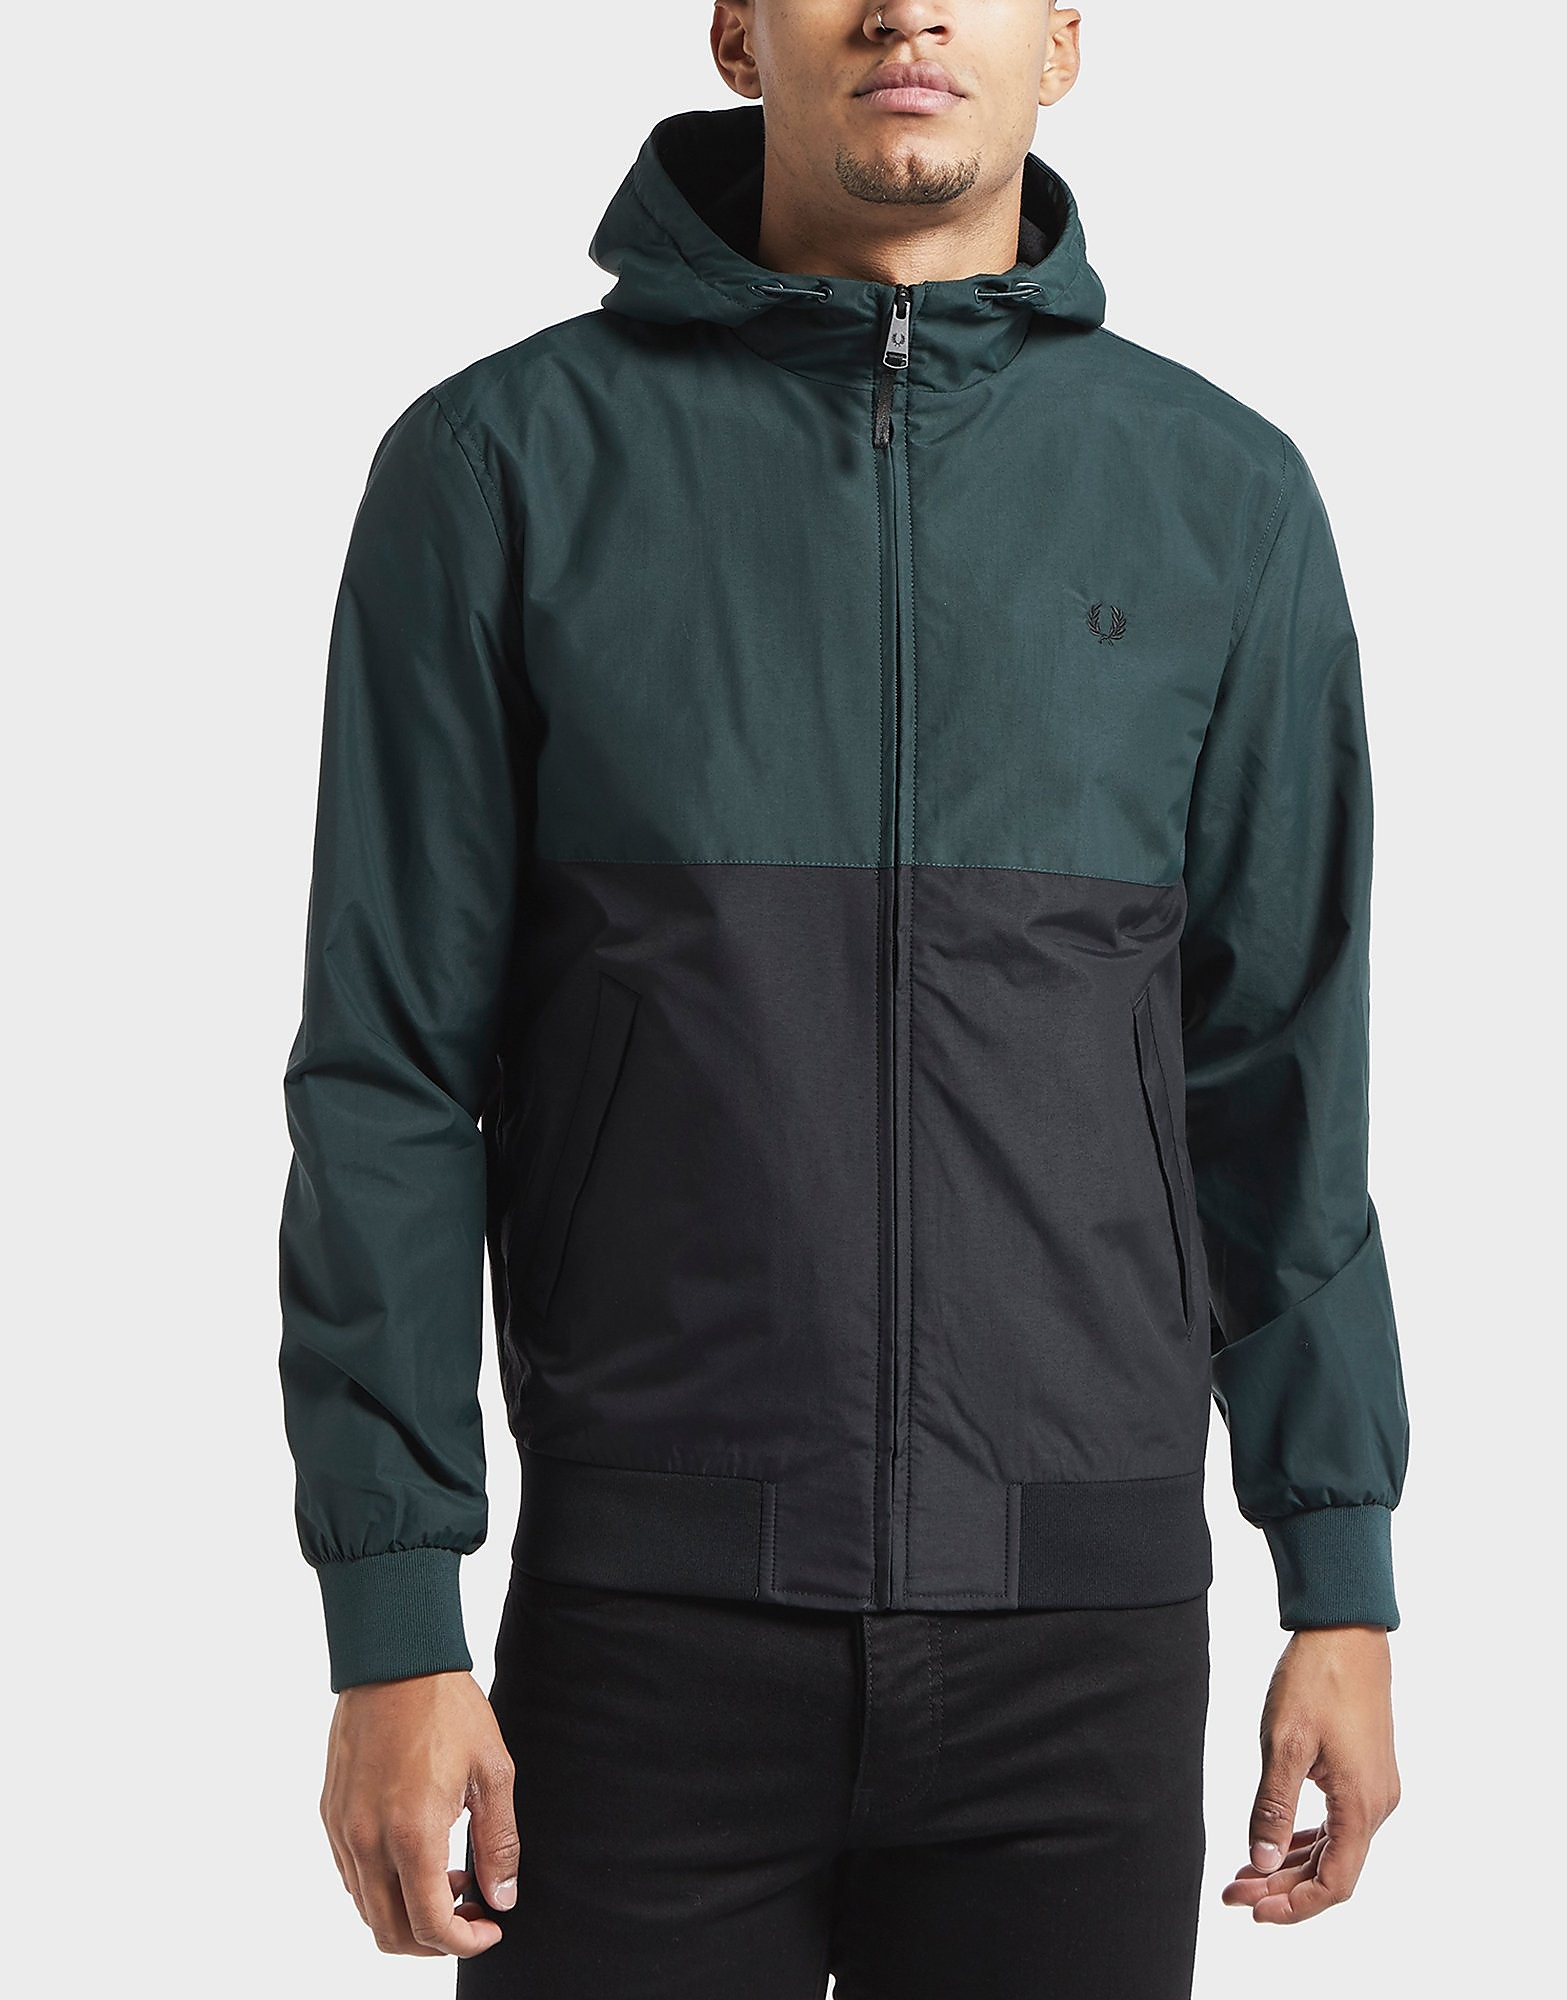 Fred Perry Colour Block Brentham Jacket - Exclusive